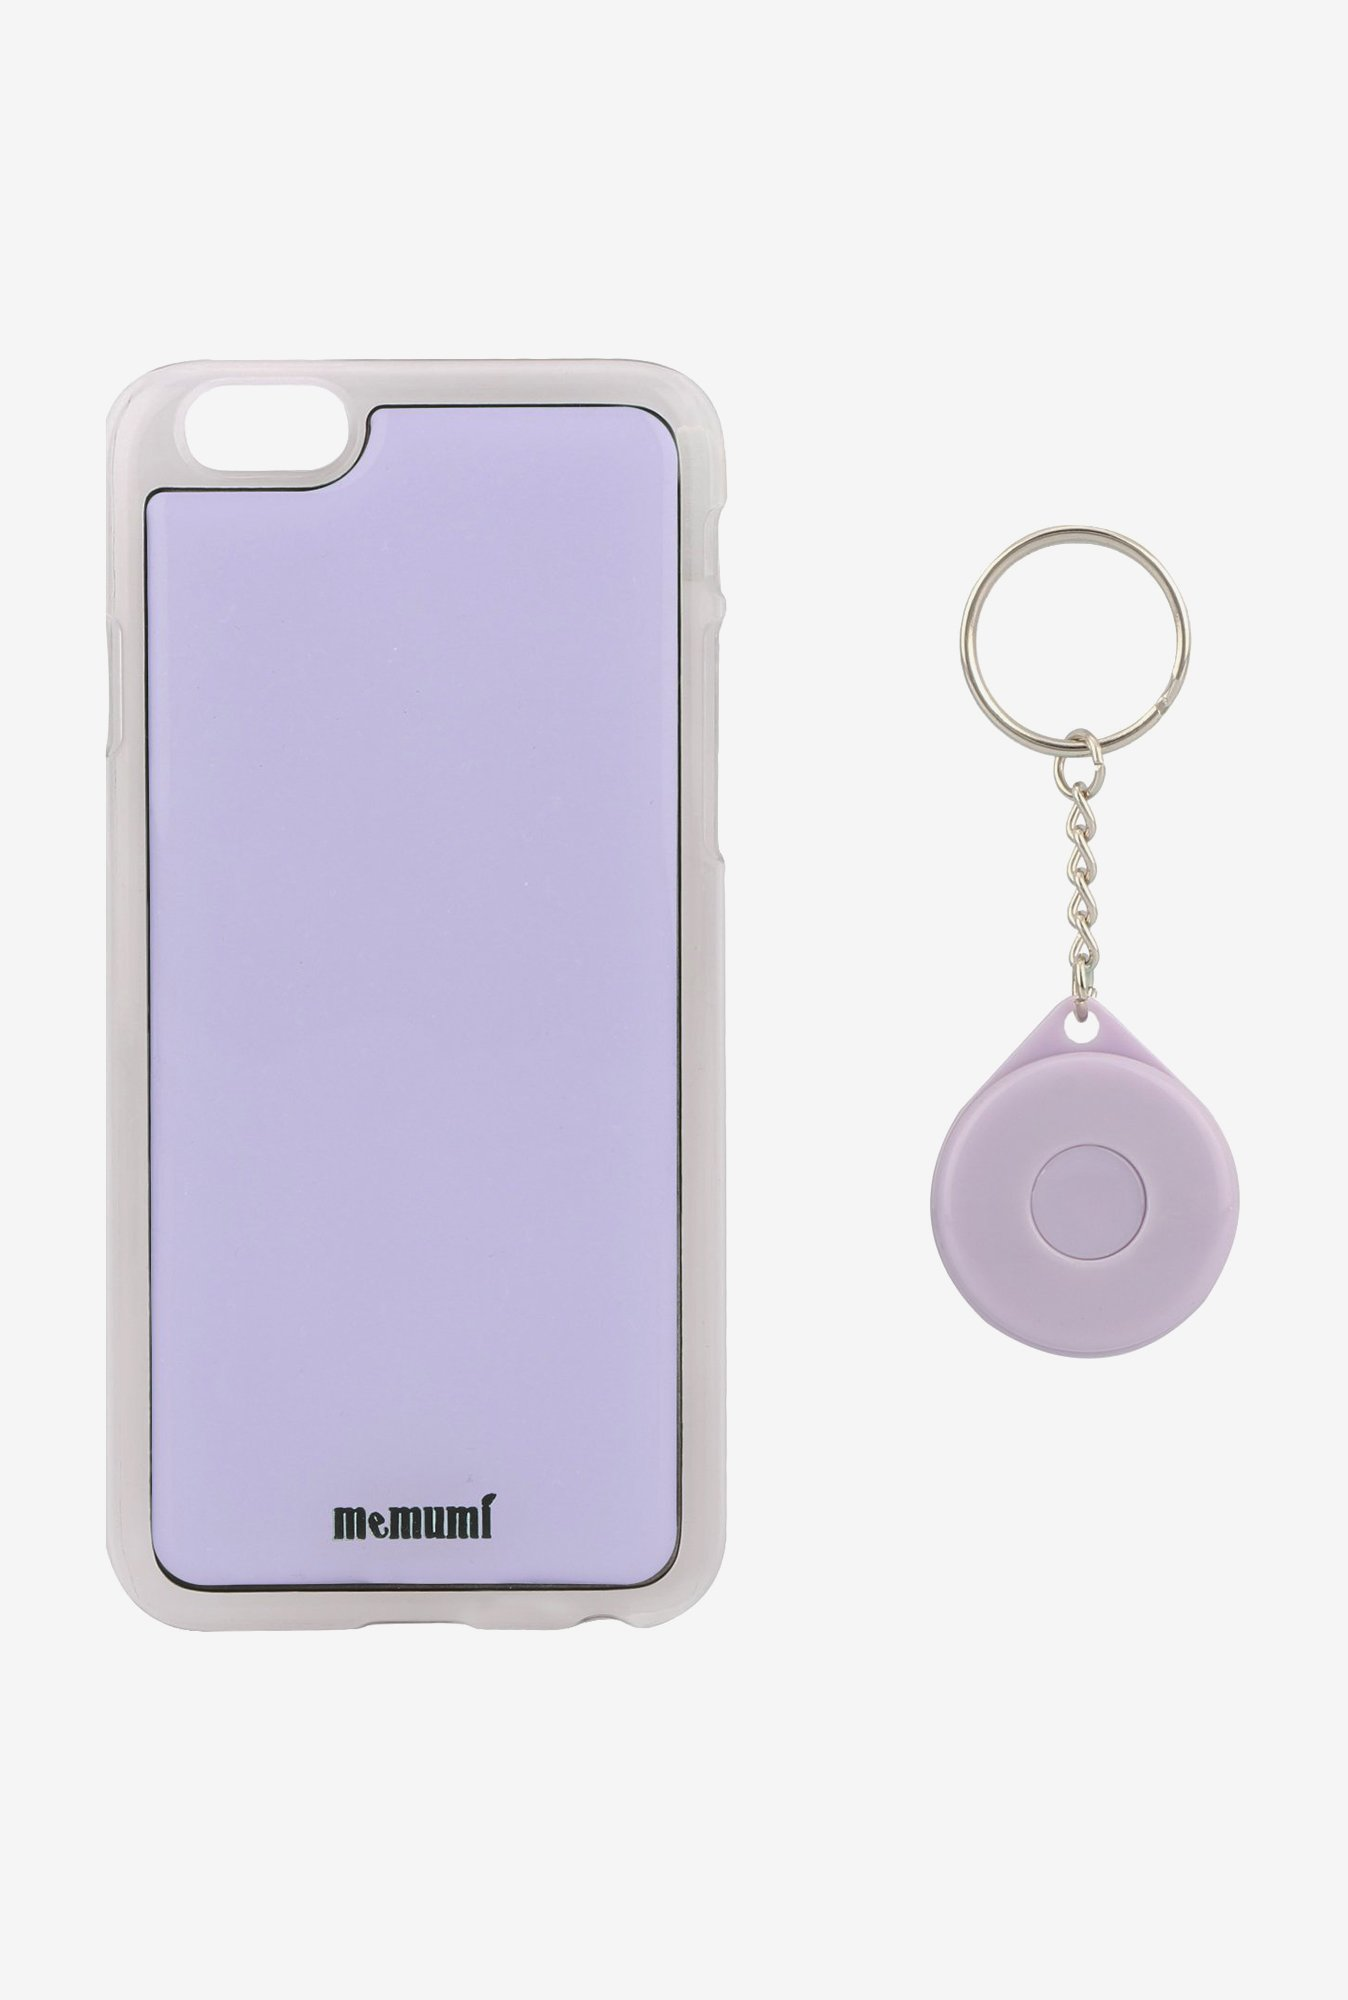 Memumi Selfie Back Cover for iPhone 6 (Purple)